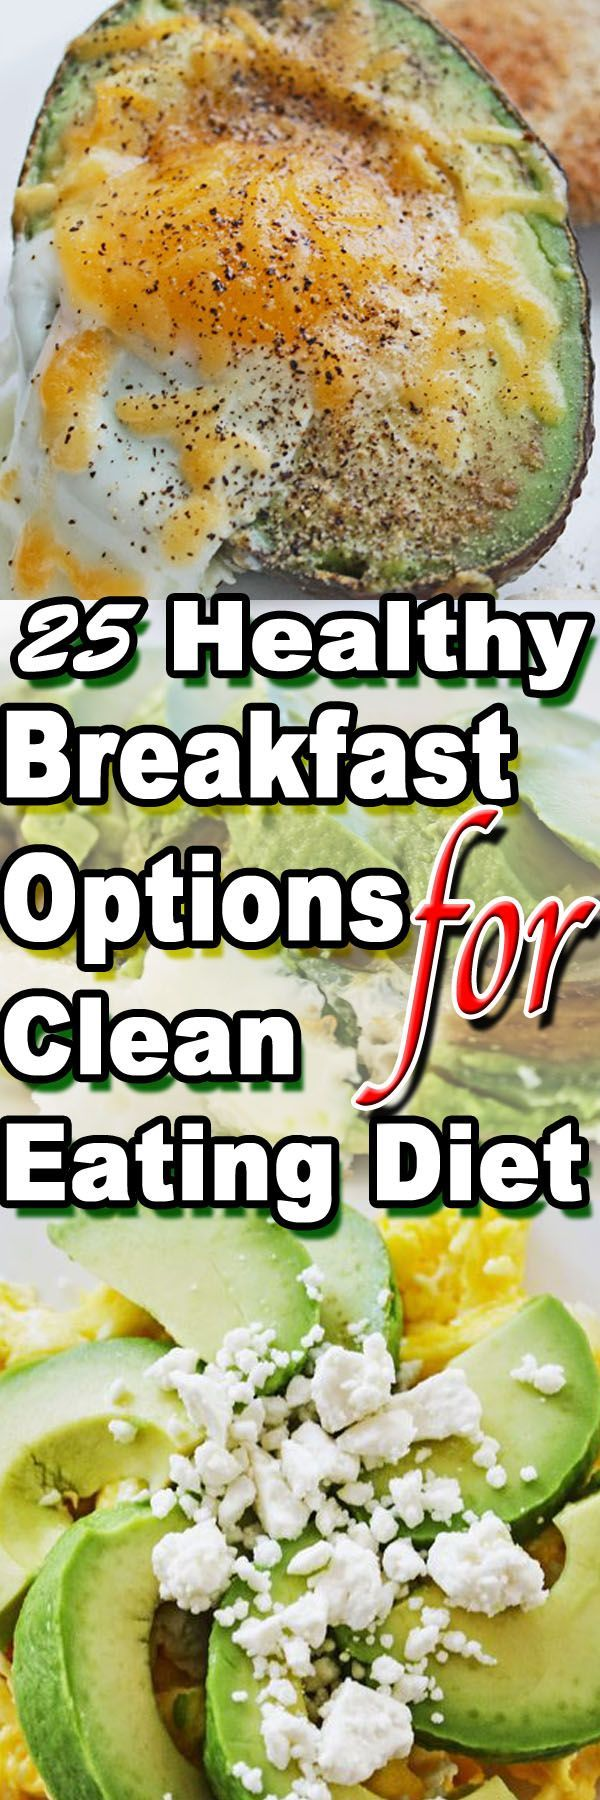 25 easy healthy breakfast options for clean eating diet!